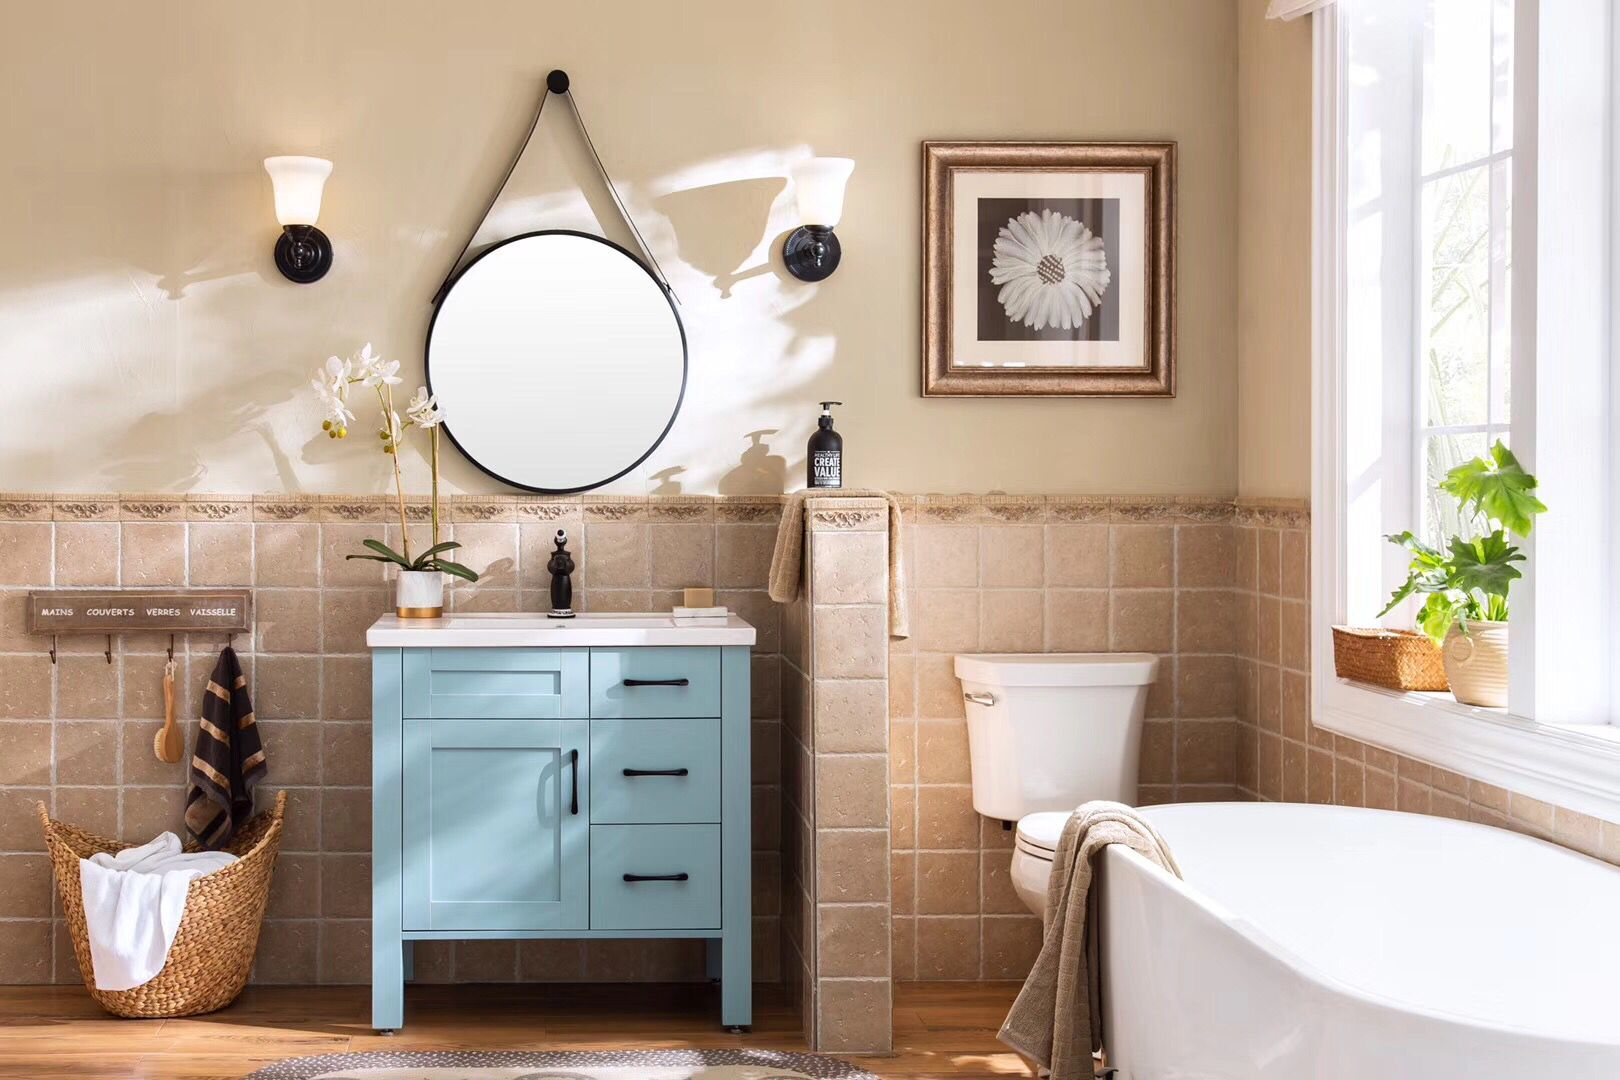 Modern Solid Wood Bathroom Cabinet Light Blue Vanity With Medicine And Round Iron Frame Mirror